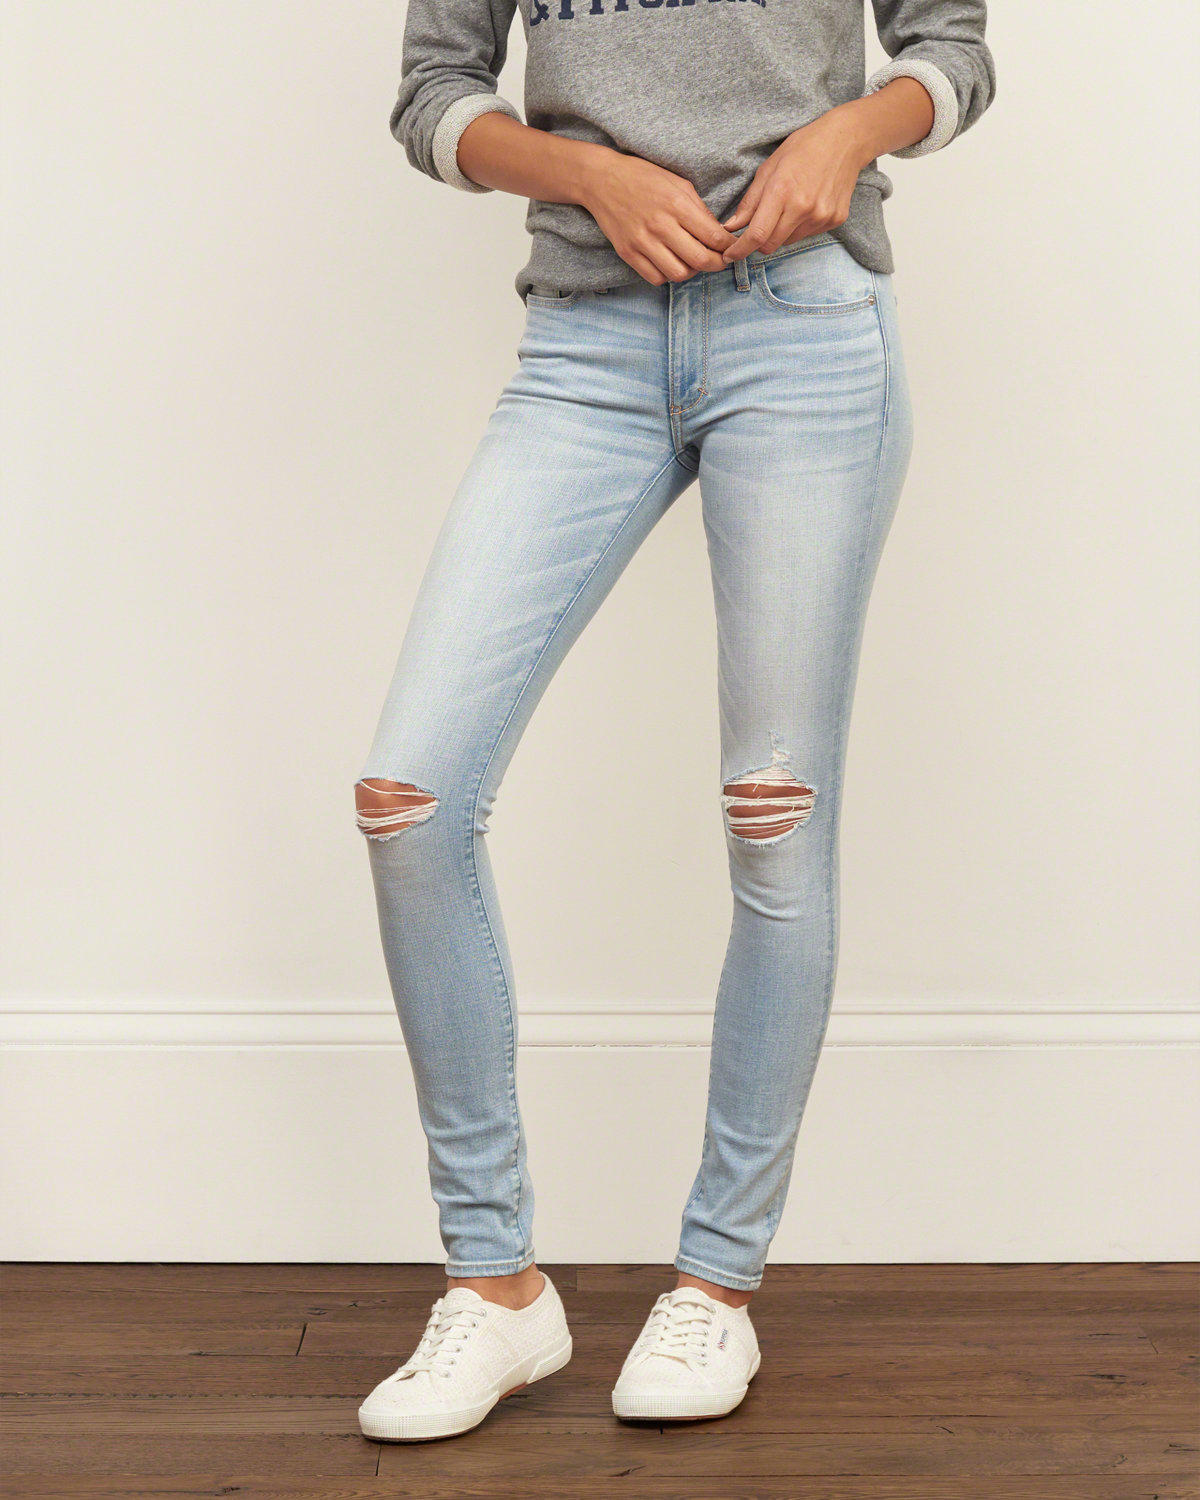 $39 Each All Jeans @ Abercrombie & Fitch